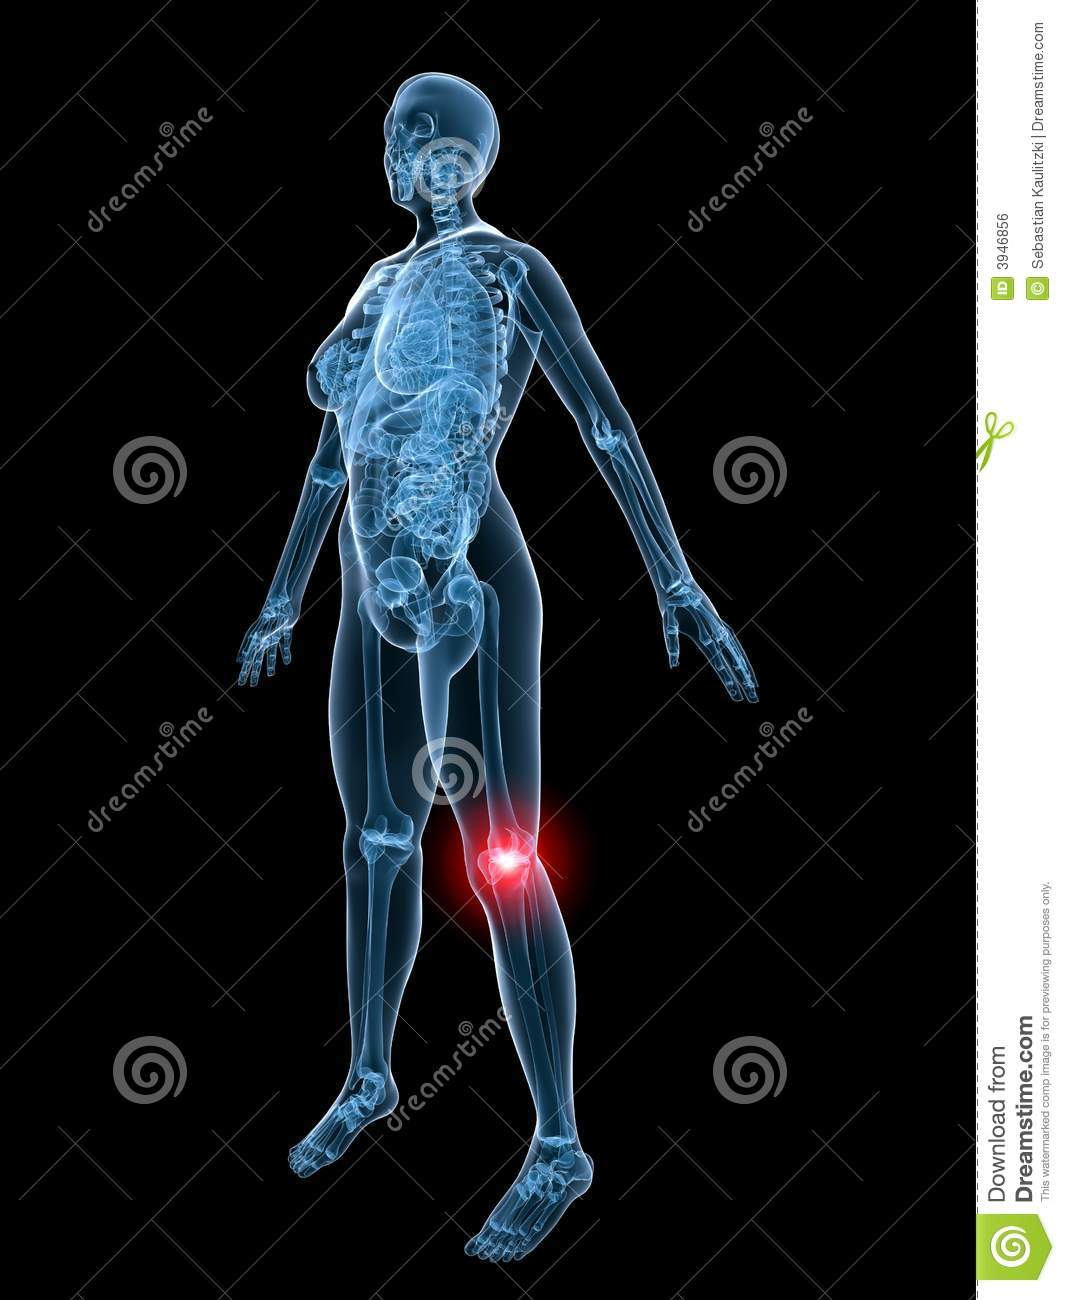 X-ray anatomy-painful knee stock illustration. Illustration of human ...